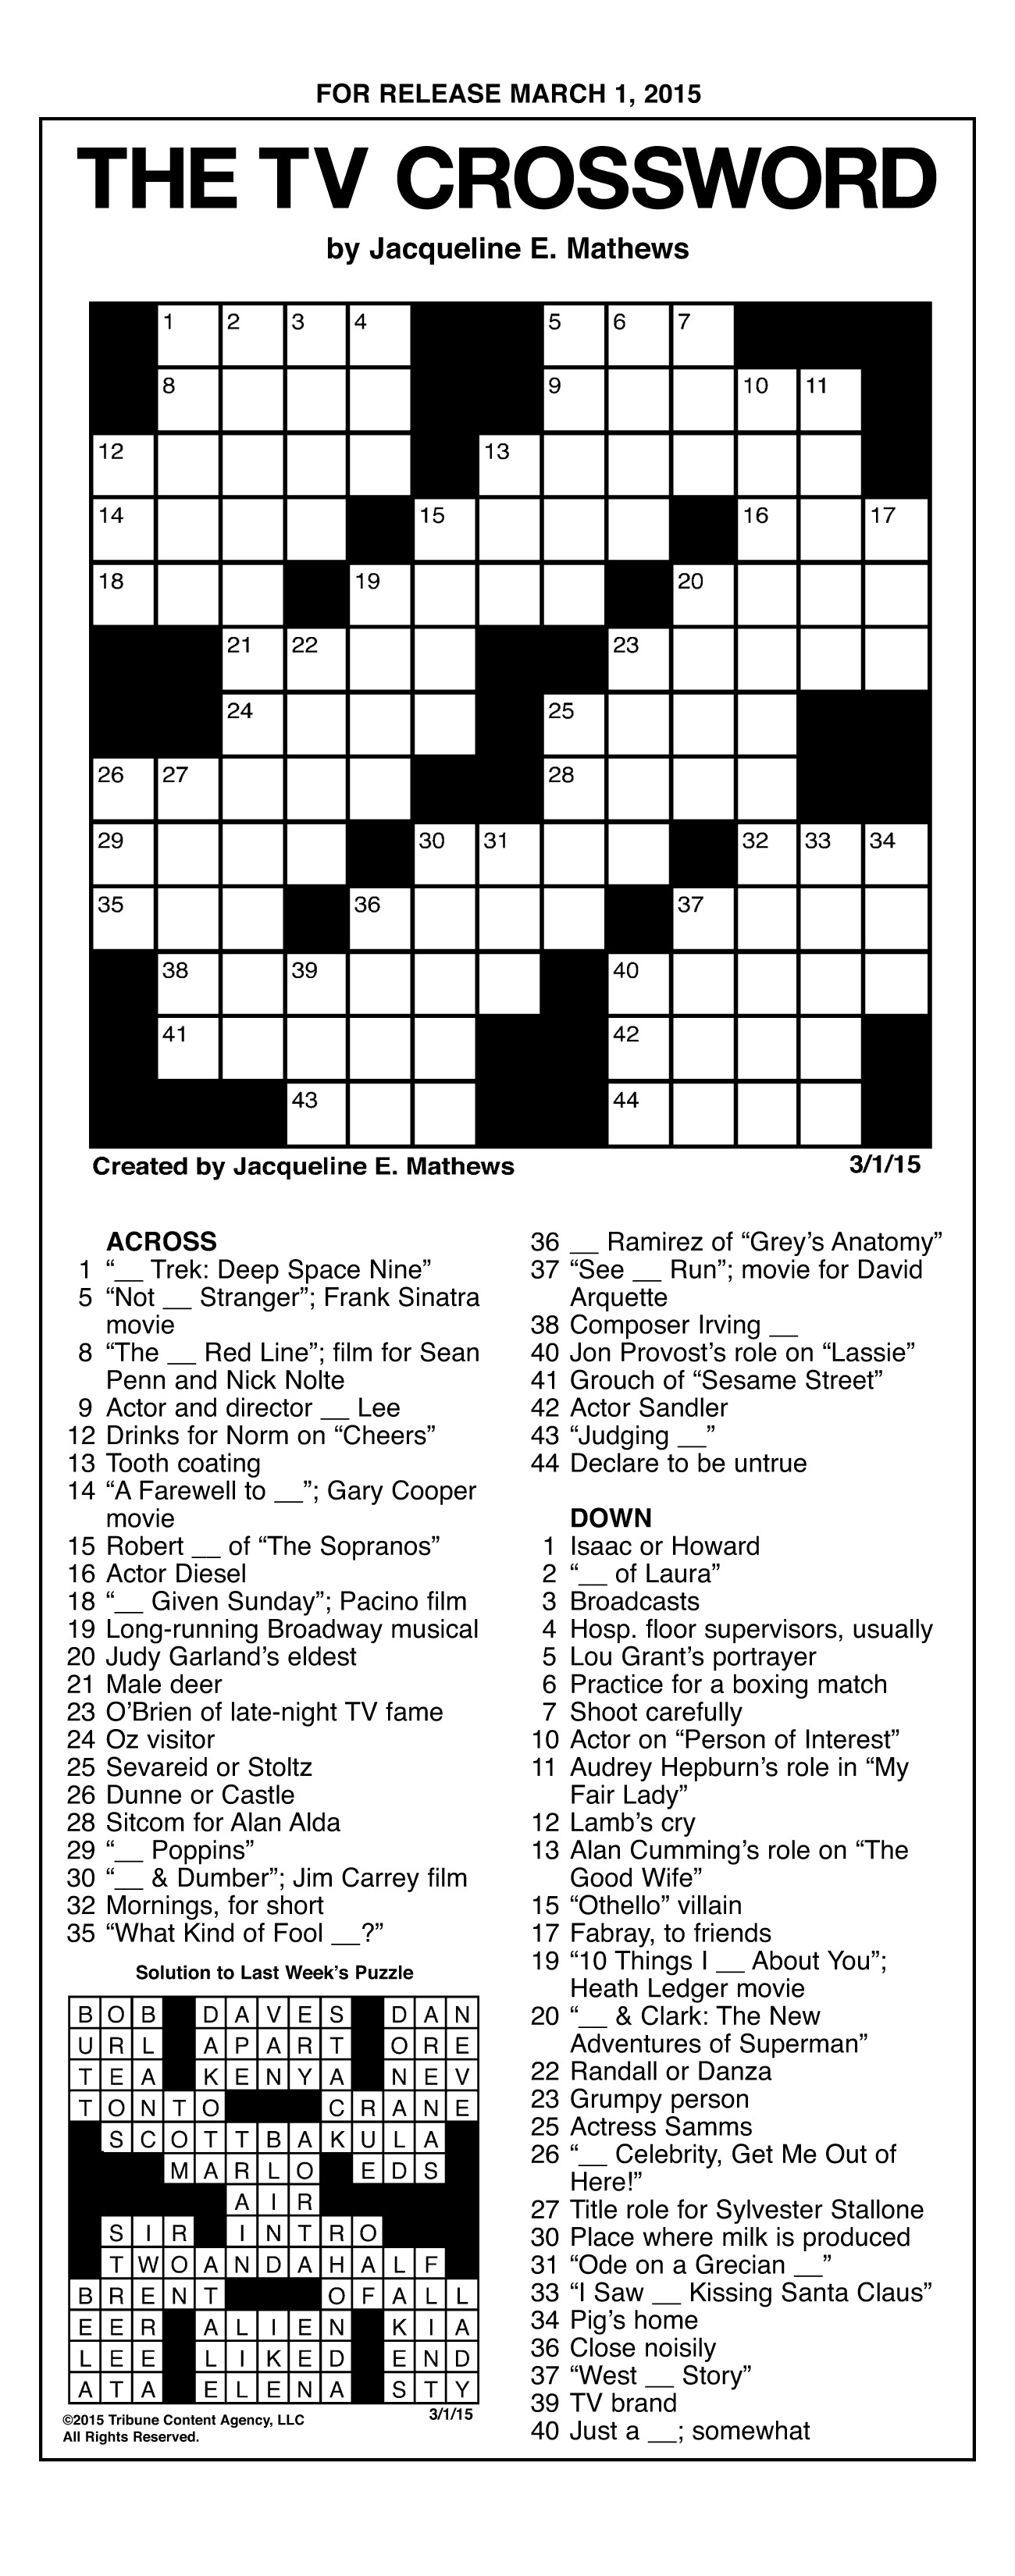 Sample Of The Tv Crossword | Tribune Content Agency (March 1, 2015) - Printable Crossword Puzzles By Jacqueline Mathews